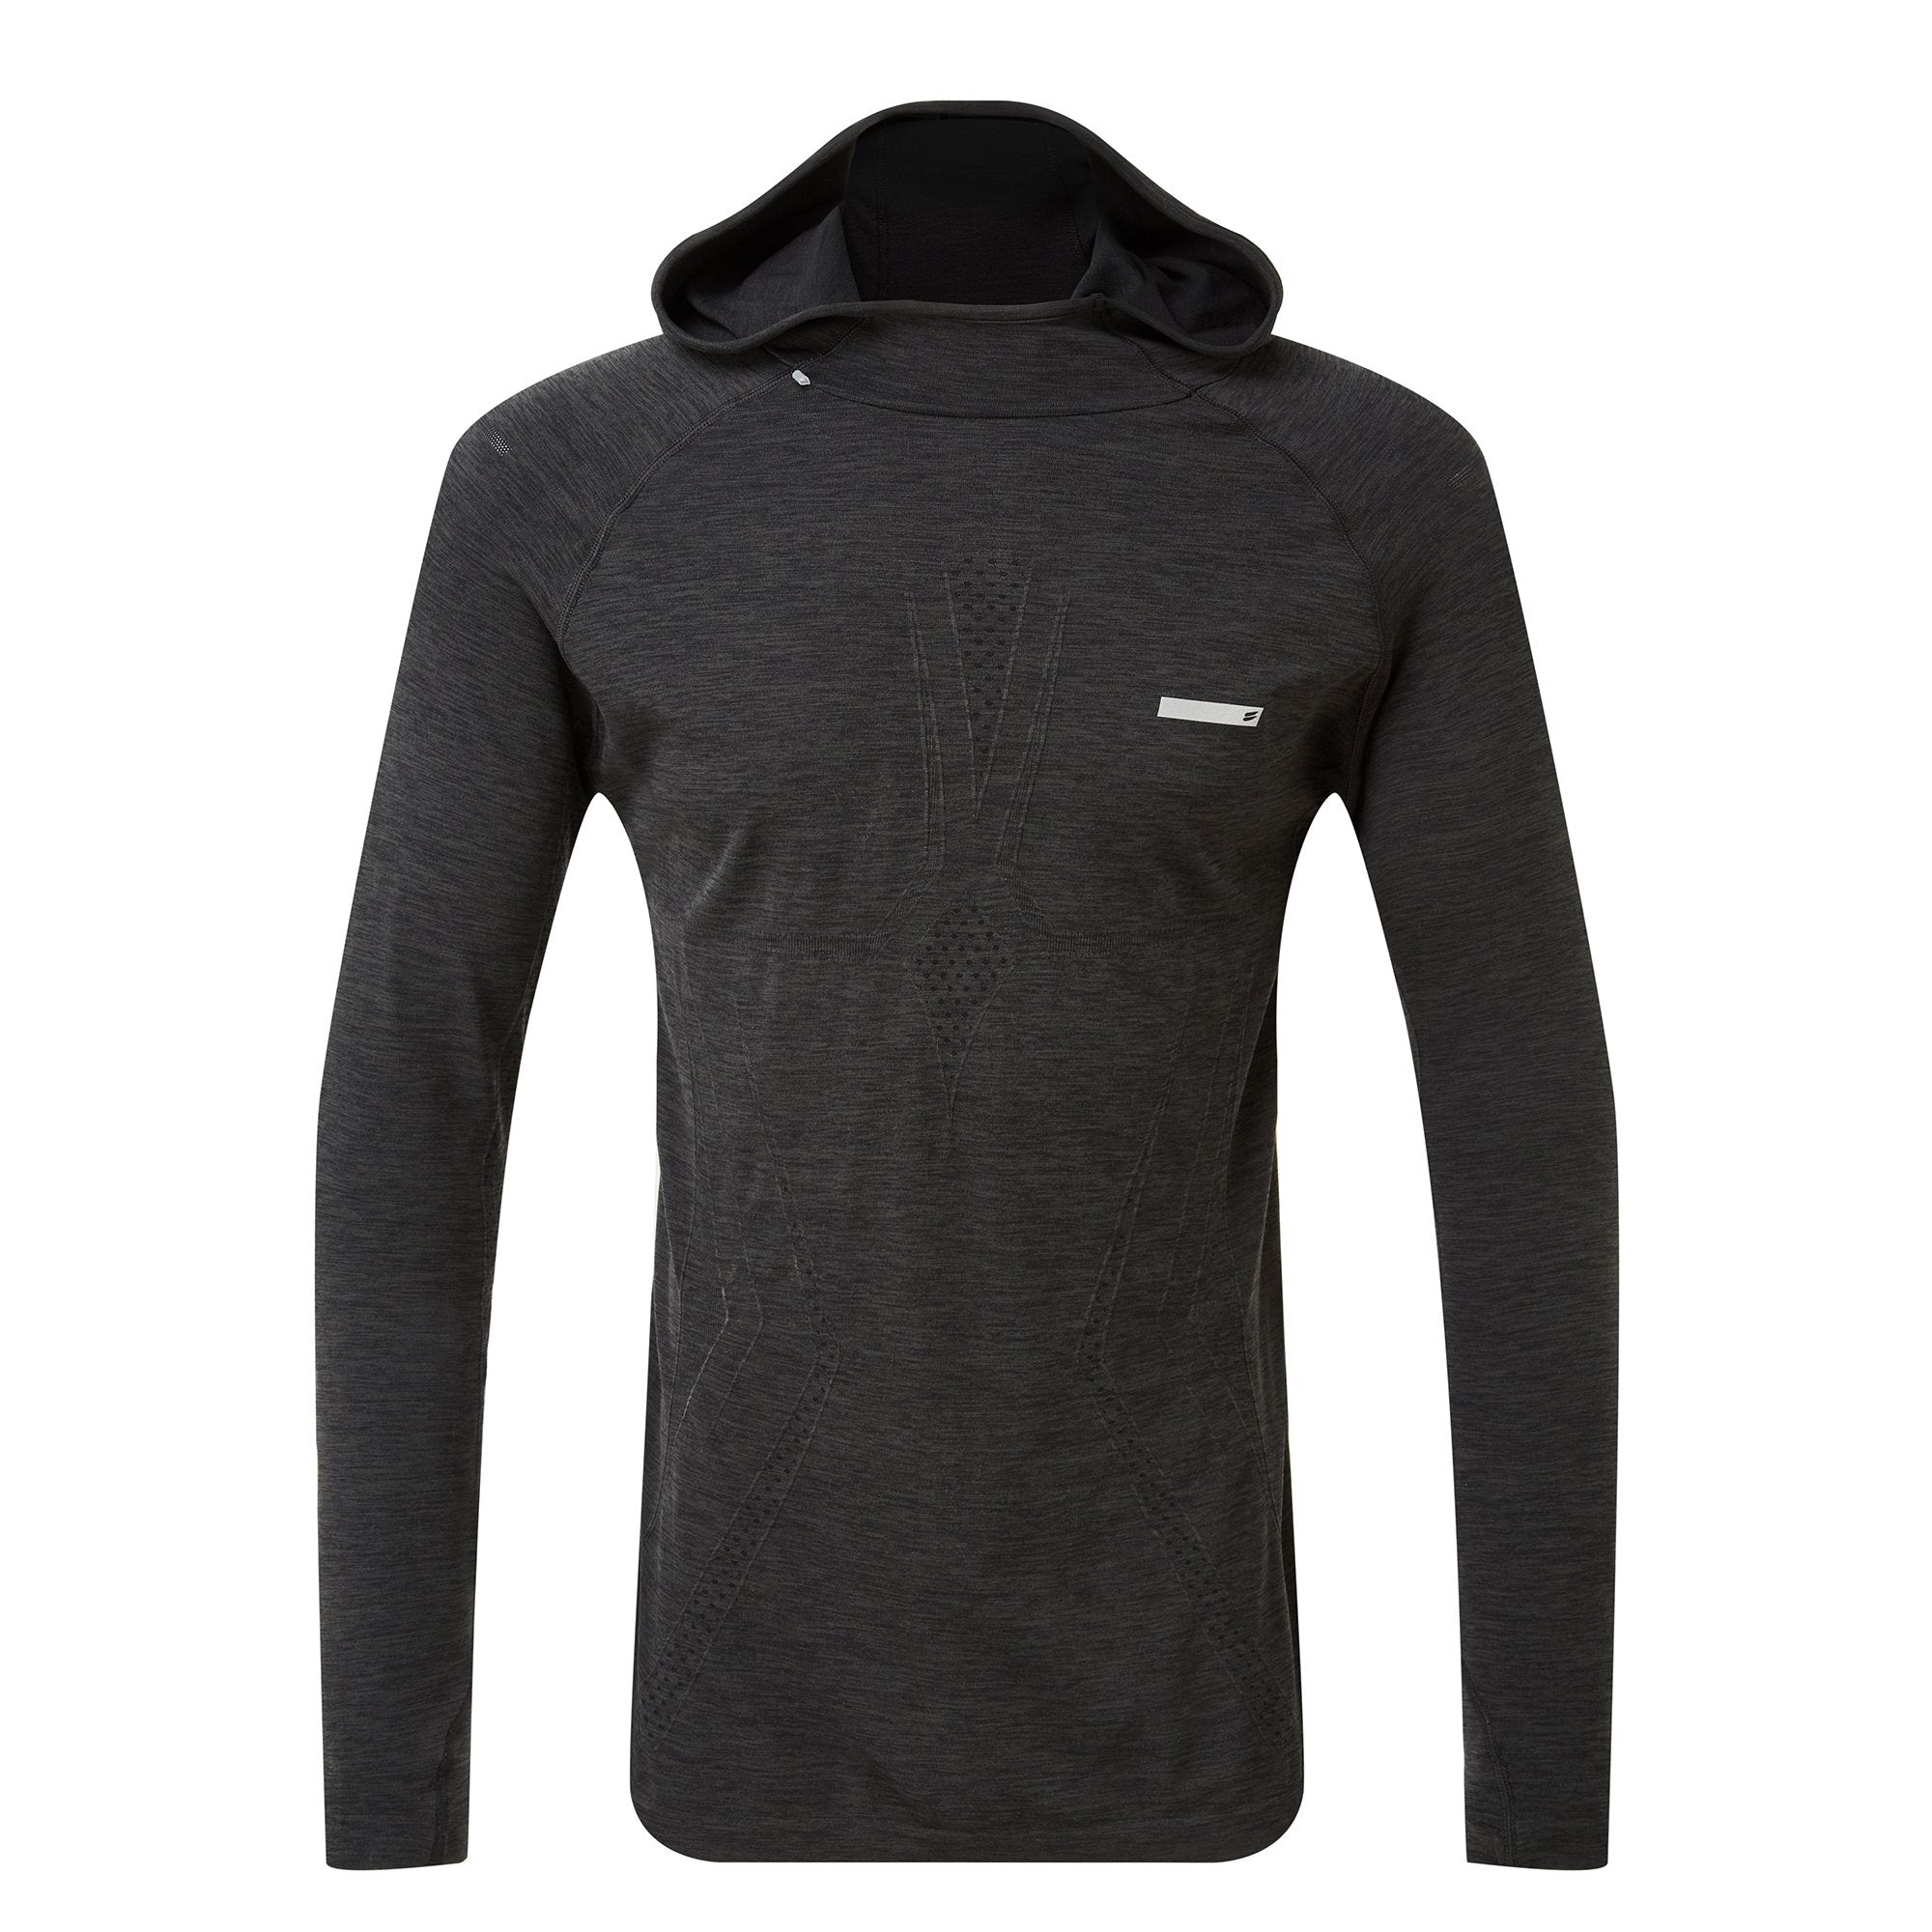 Engineered Hoodie - Charcoal